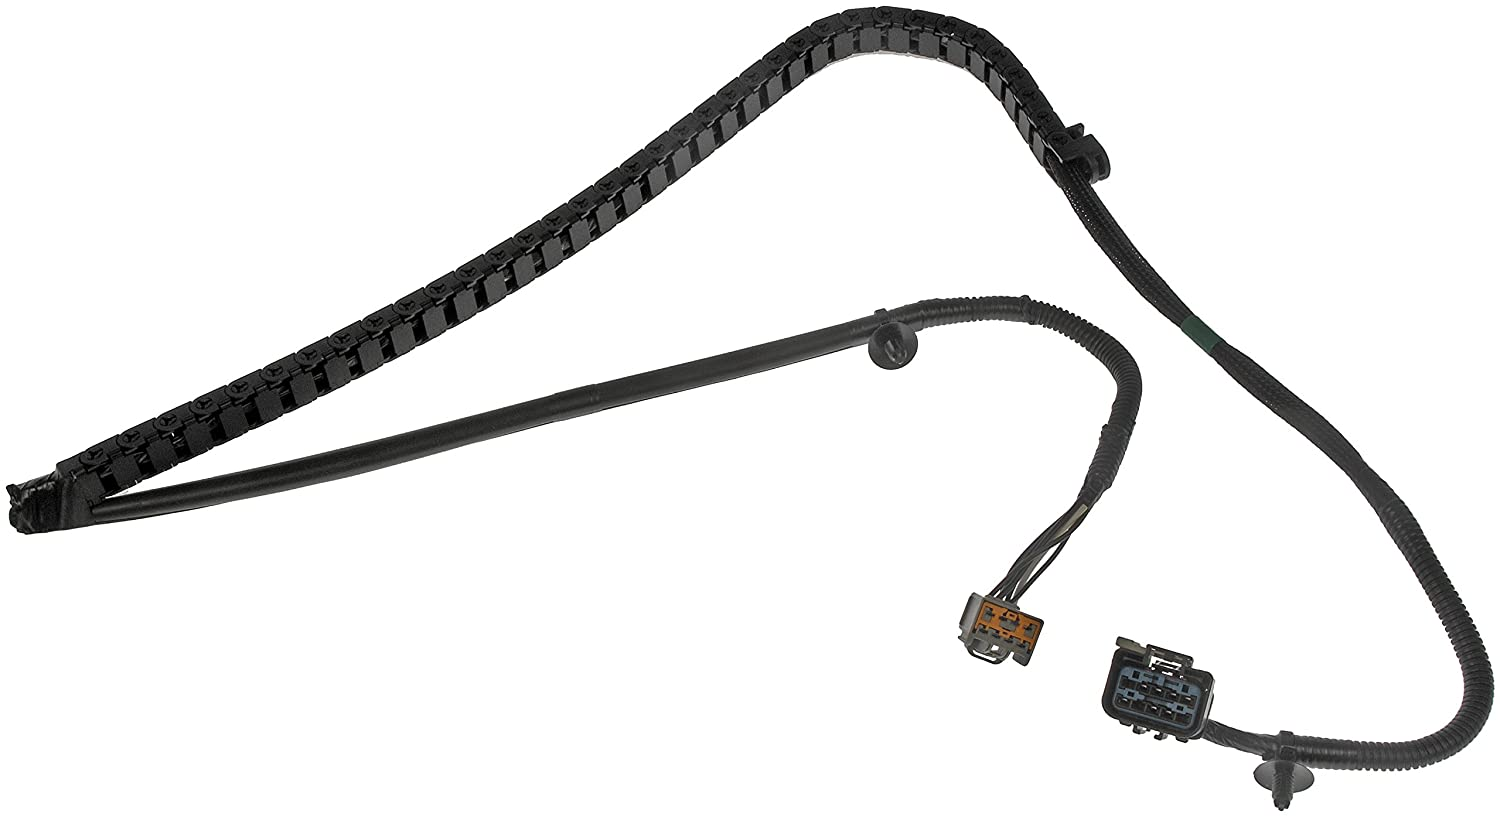 71%2B72I0QwkL._SL1500_ amazon com dorman 747 311 passenger side sliding door harness wiring harness for chrysler town and country at alyssarenee.co